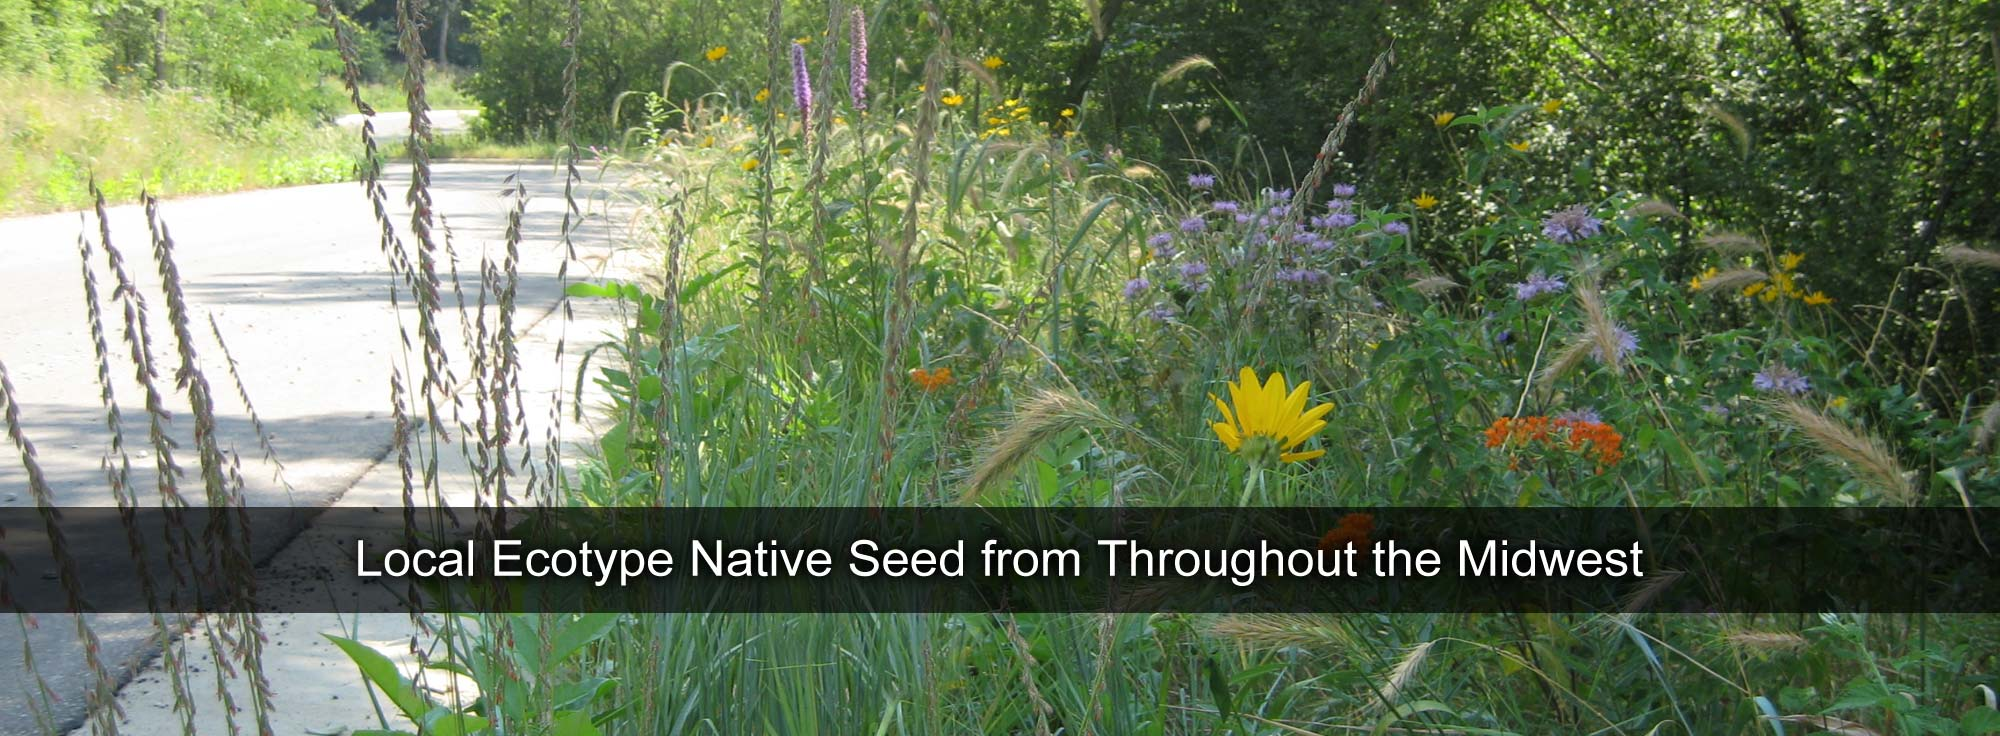 Local Ecotype Native Seed from Throughout the Midwest